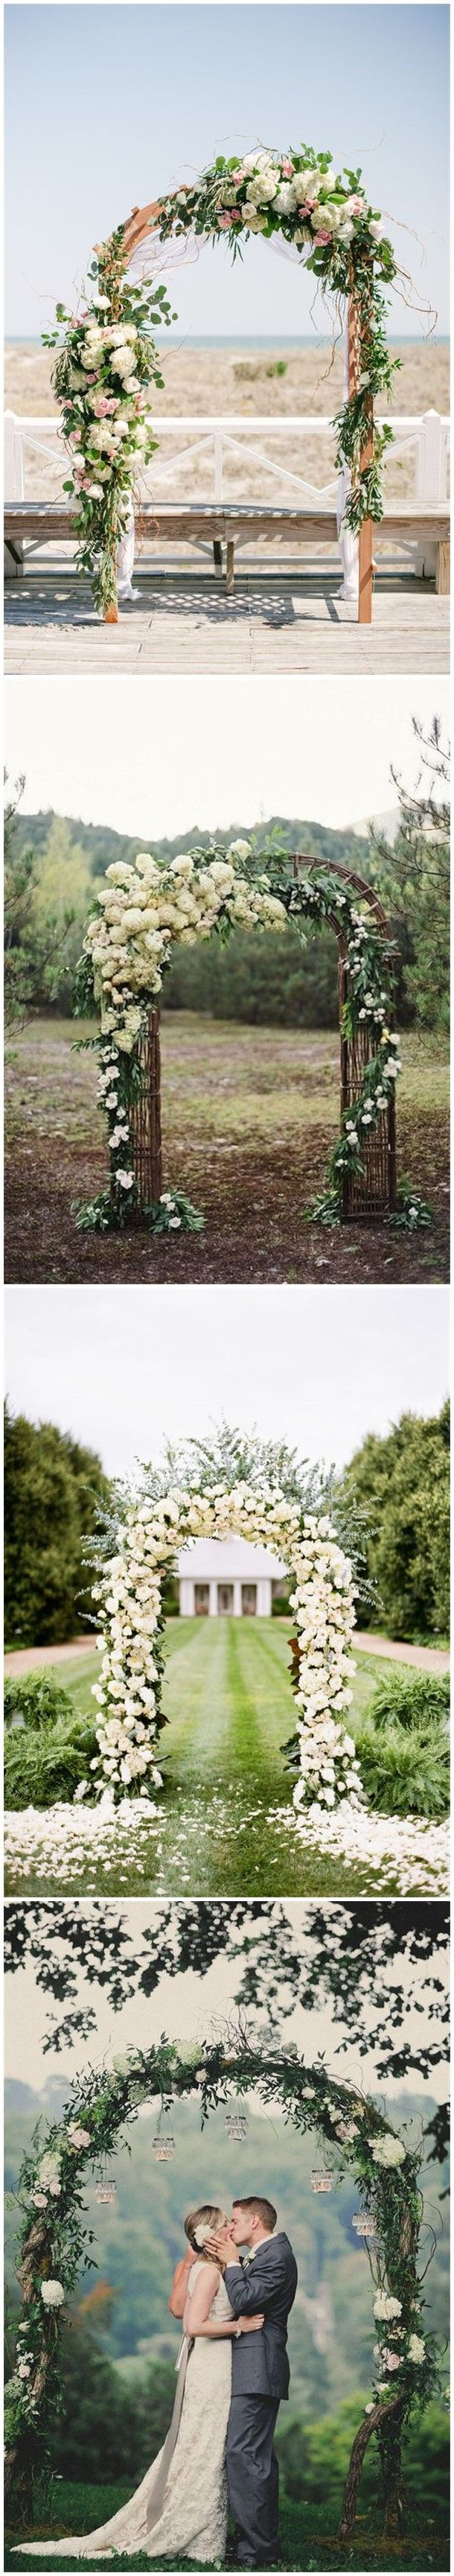 how to make a rustic wedding arch